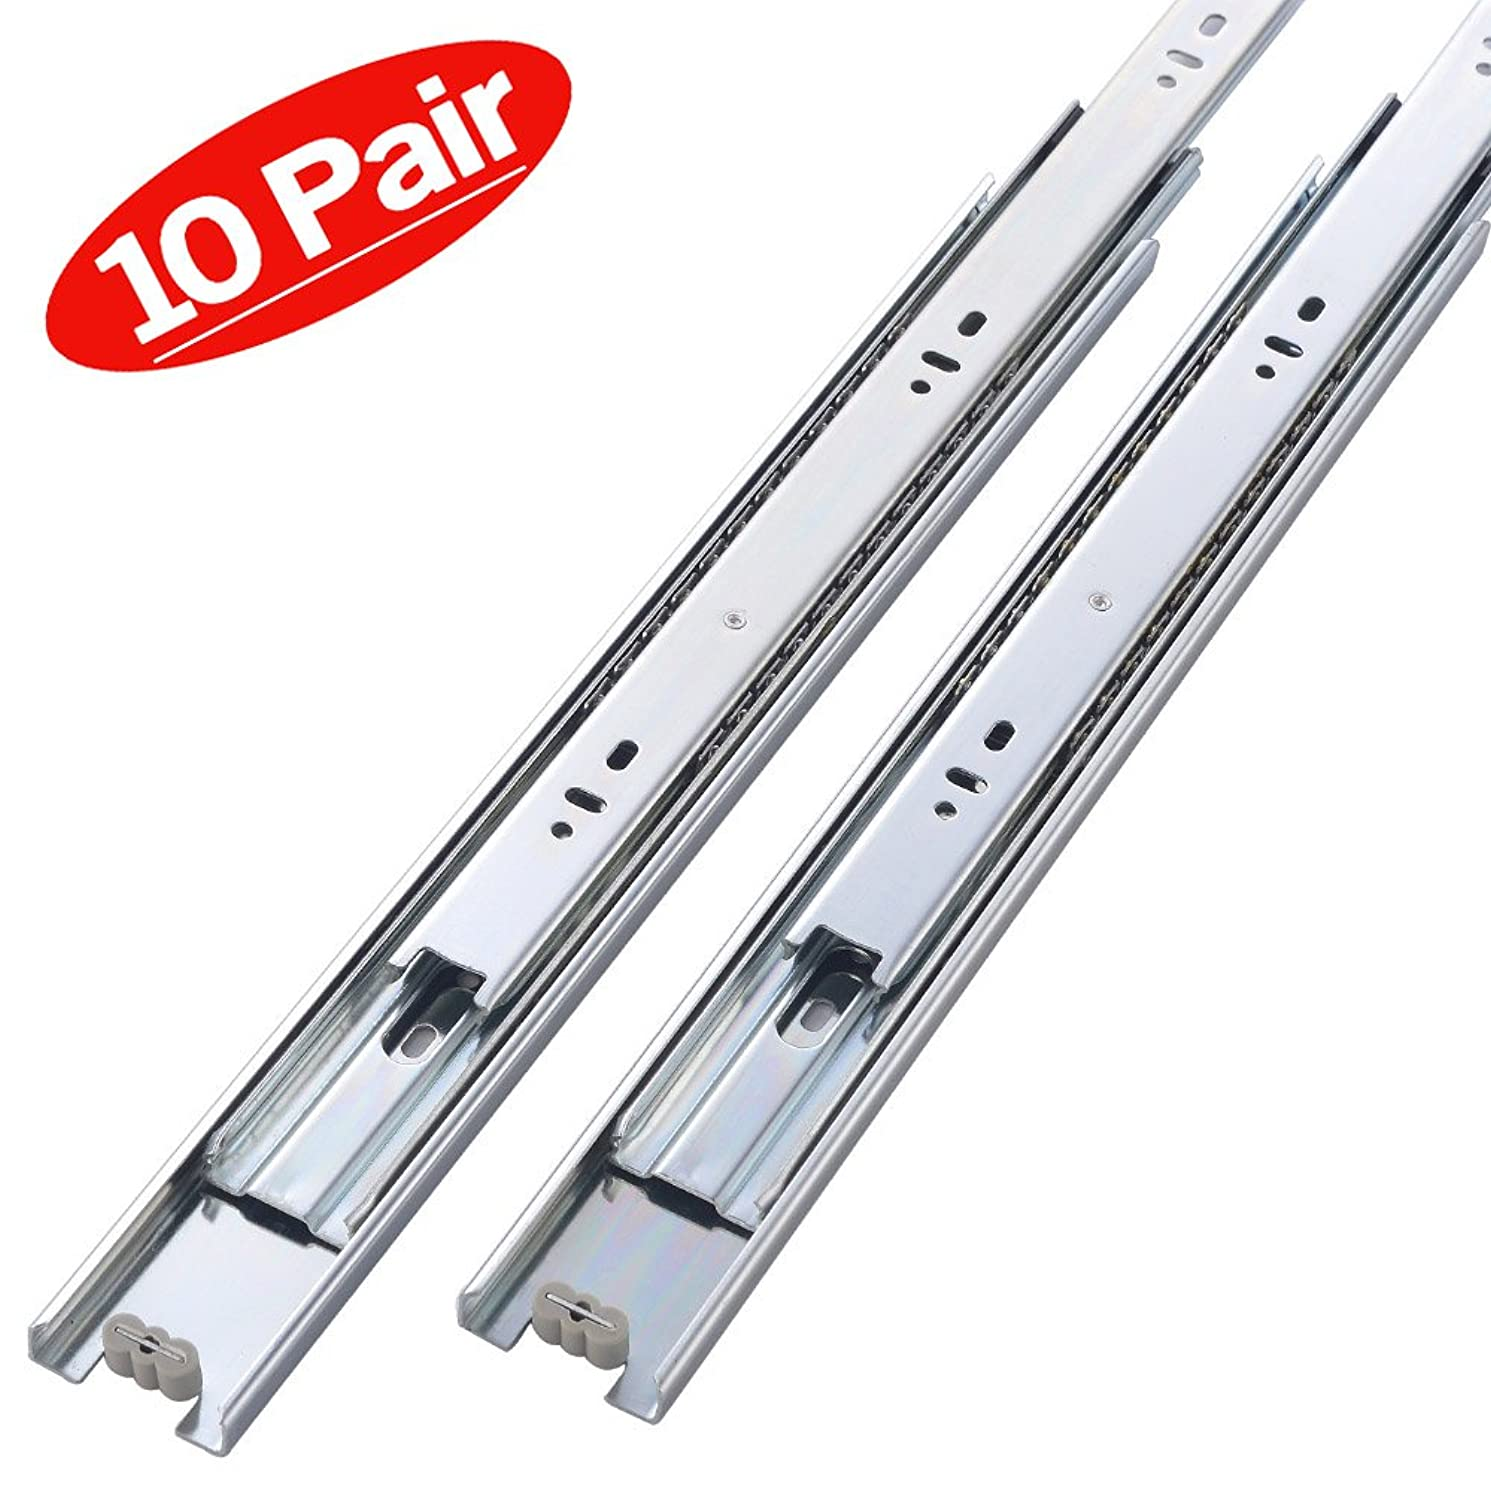 Friho 10 Pair of 20 Inch Hardware Ball Bearing Side Mount Drawer Slides, Full Extension, Available in 10'',12'',14'',16'',18'',20'' Lengths